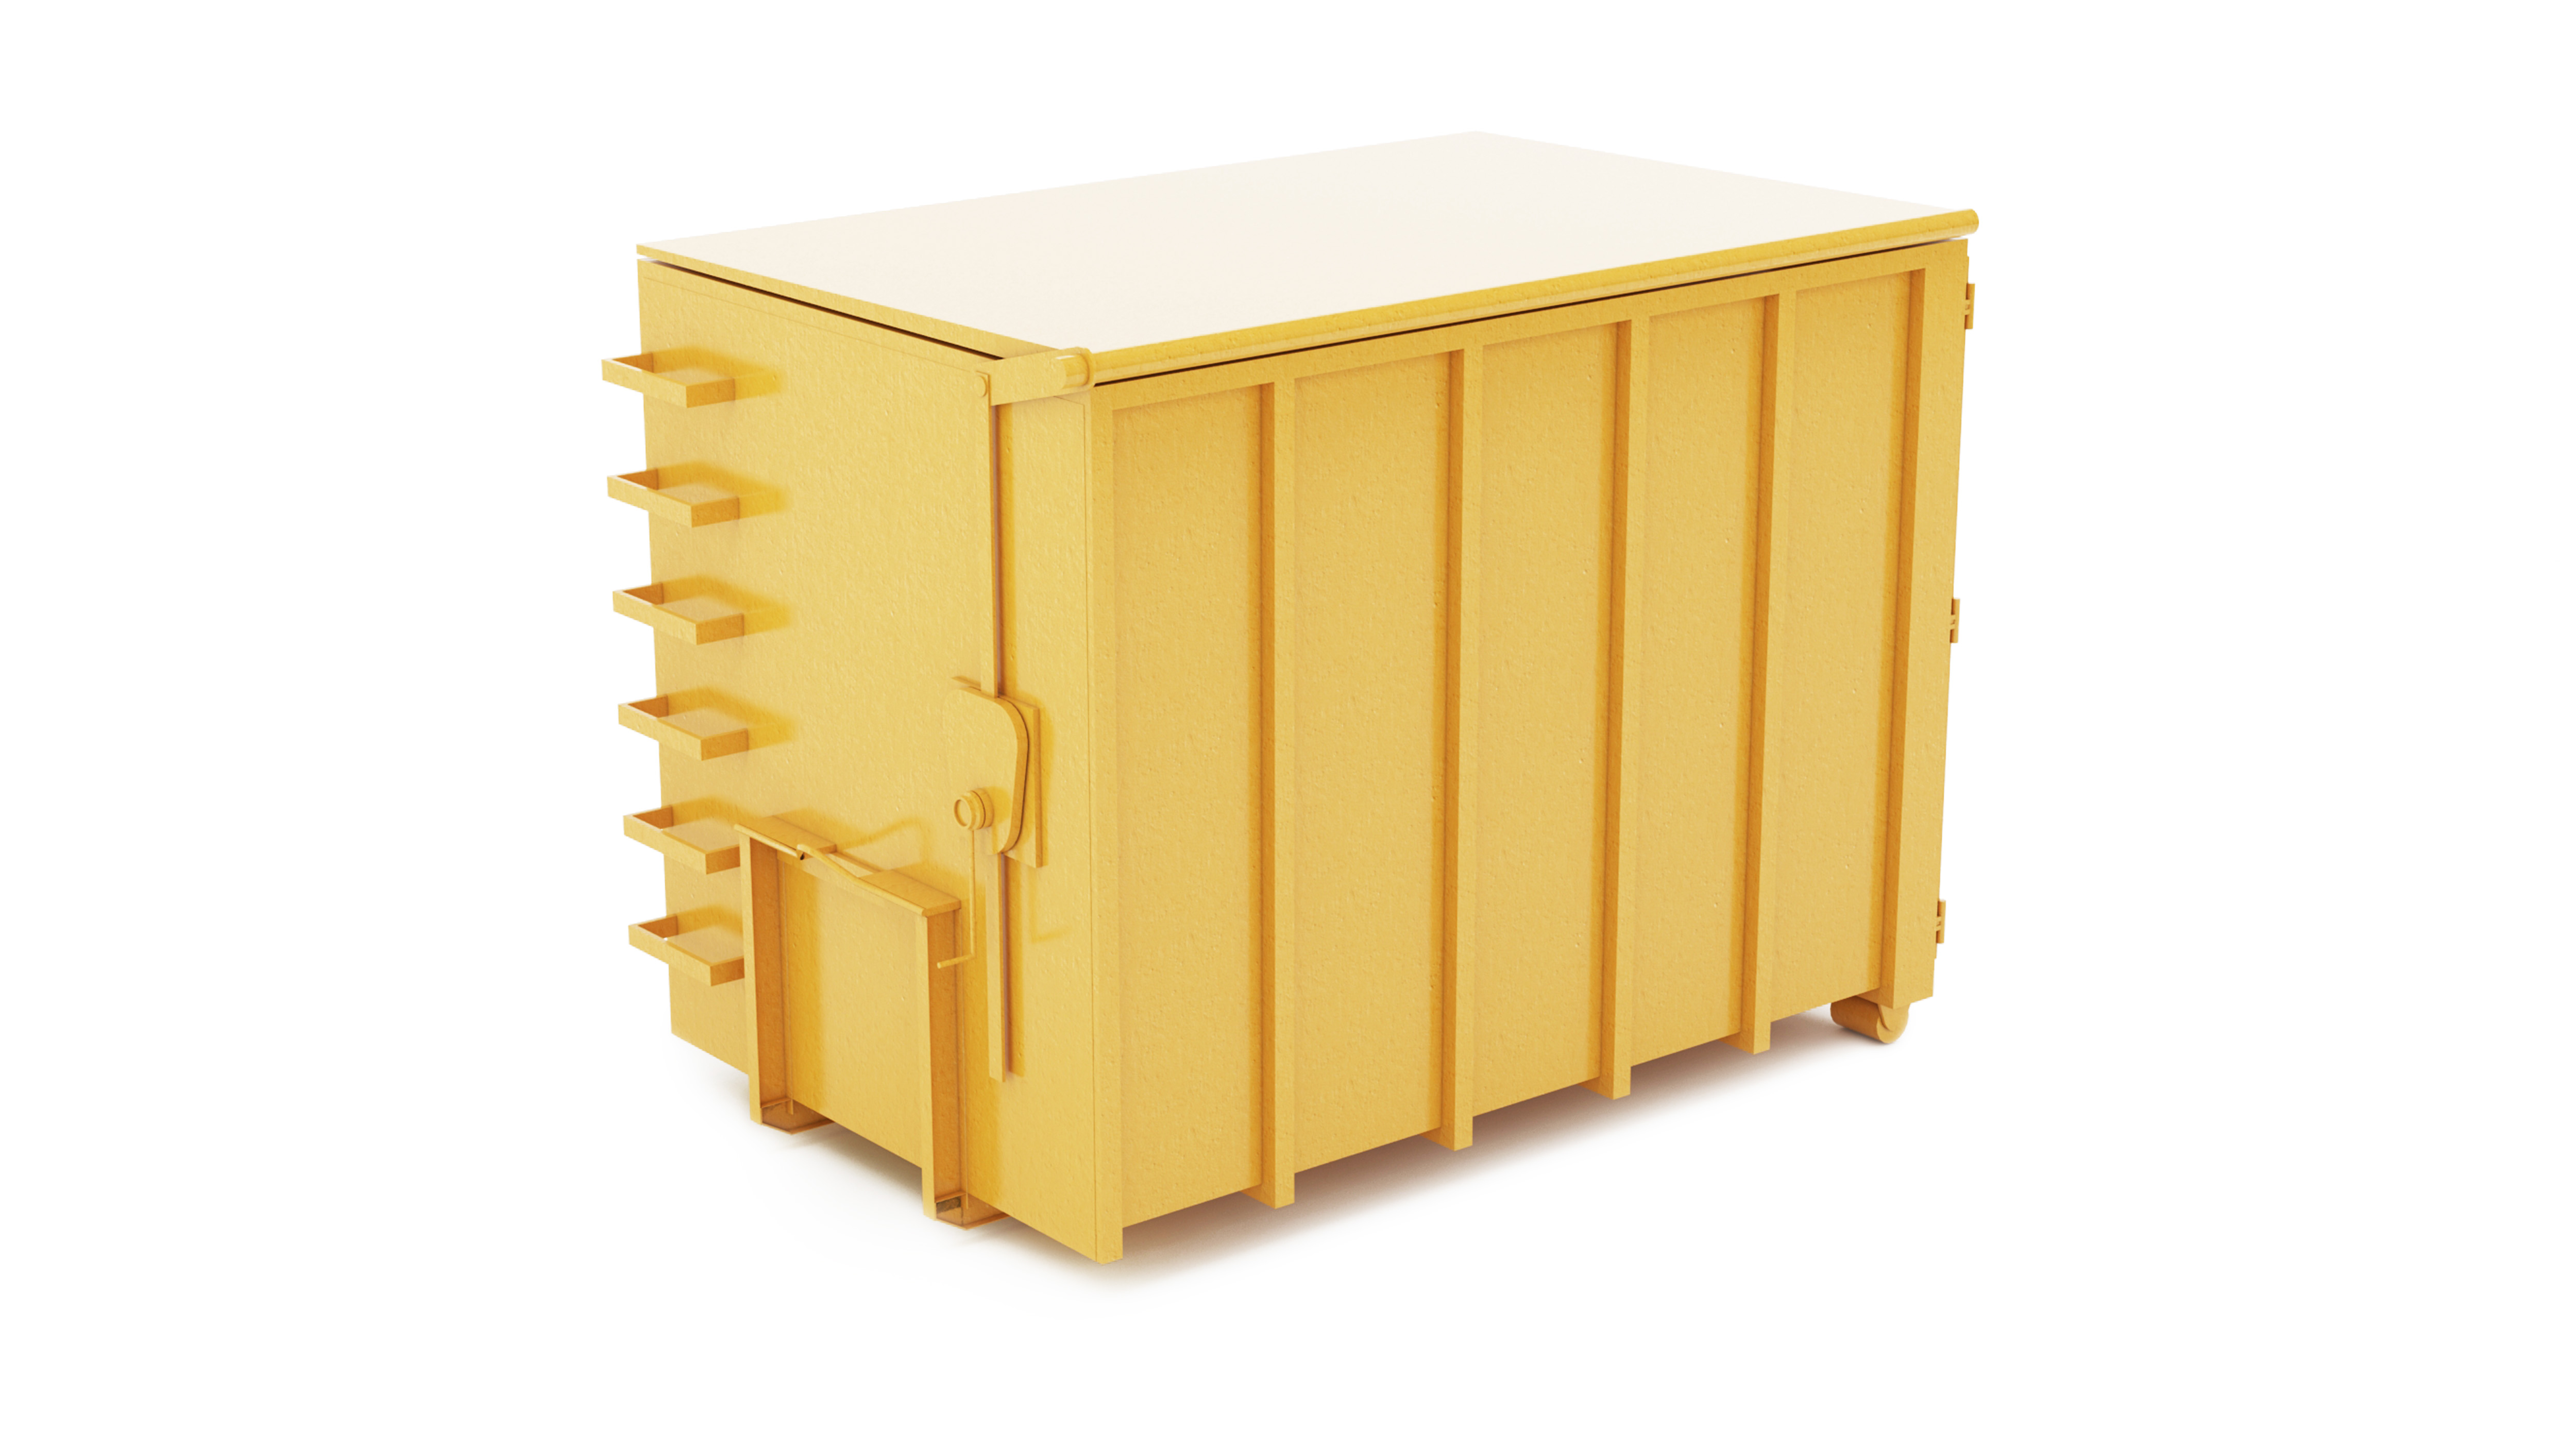 Container City - acoperit cu capac rolltop - cod ABCITY2.jpg